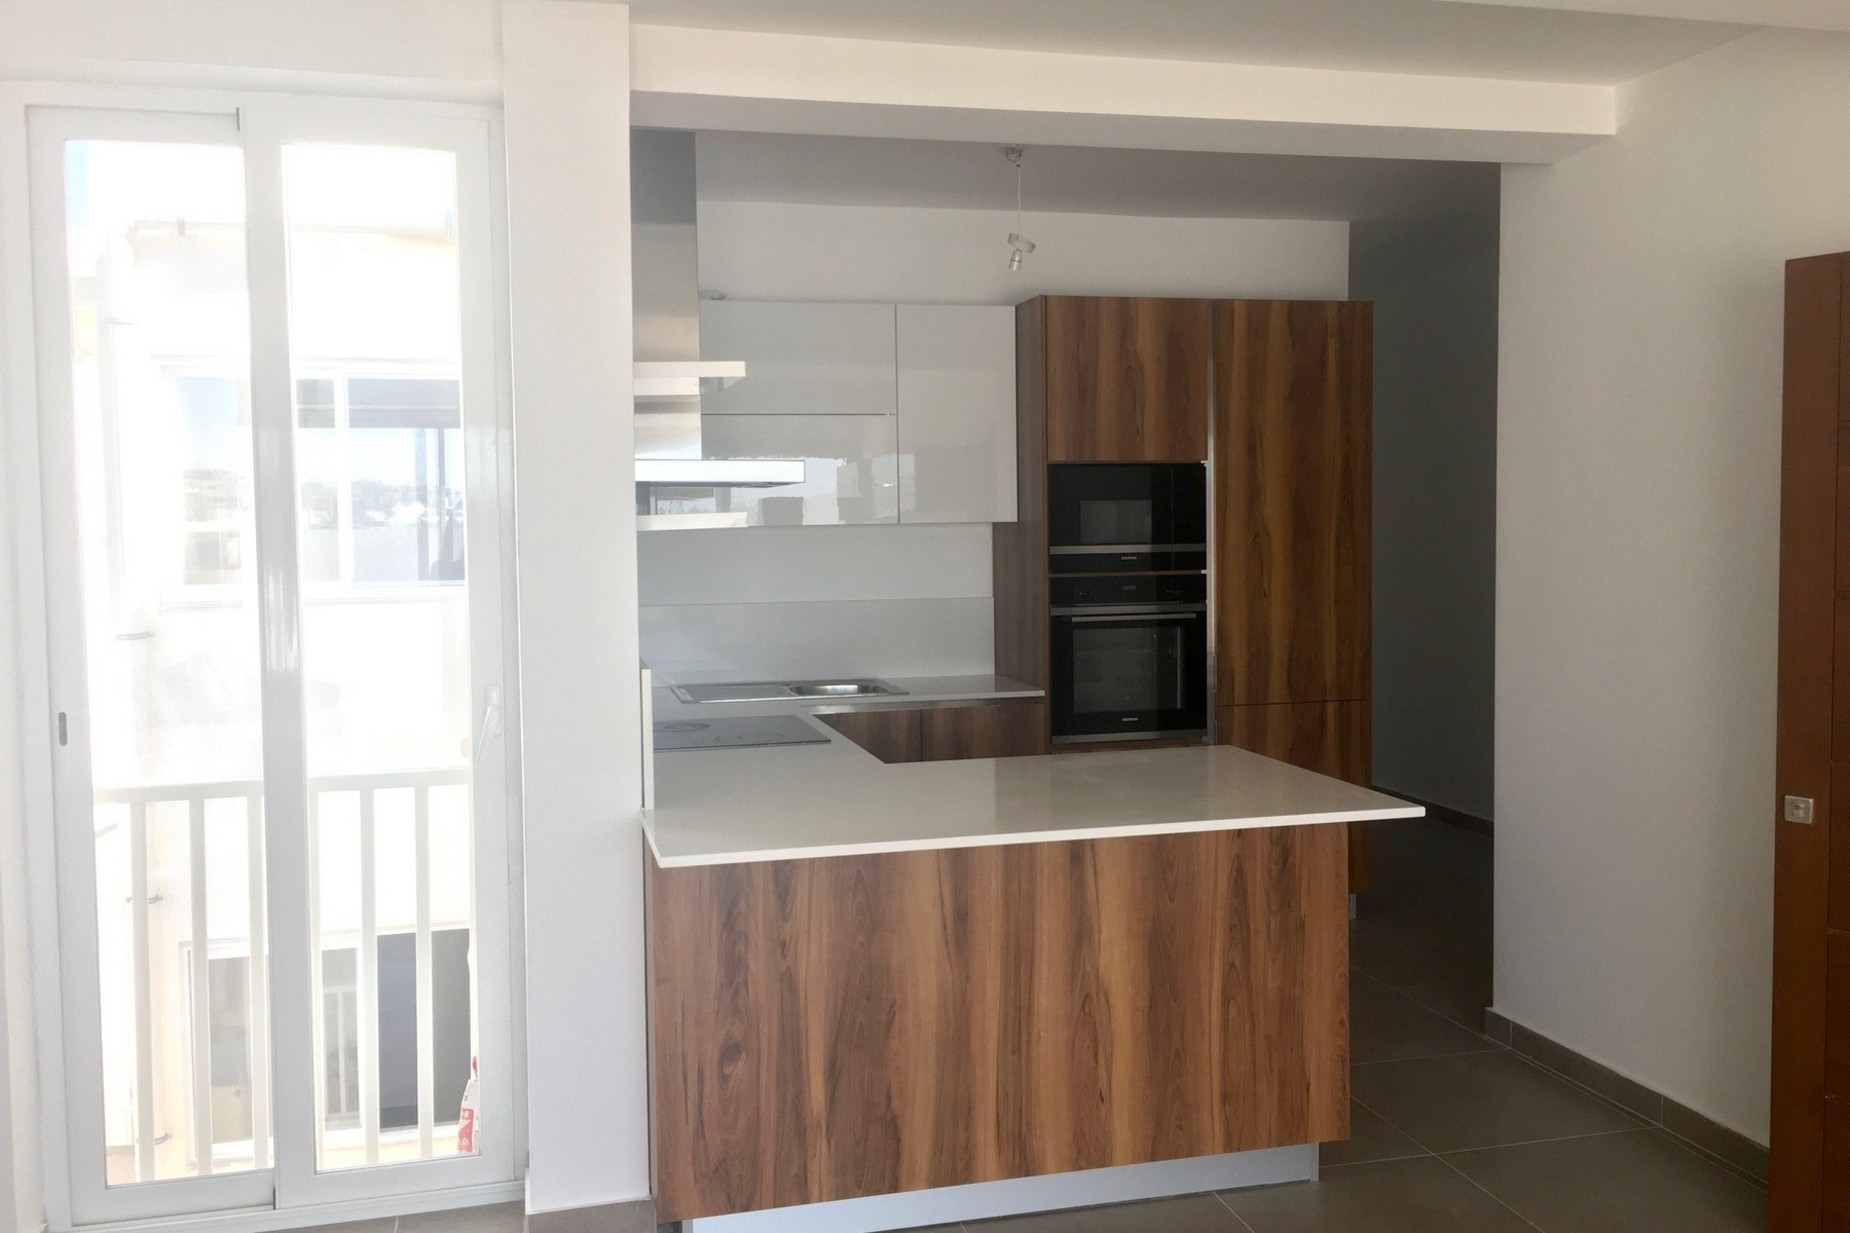 3 bed Penthouse For Sale in Ibragg, Ibragg - thumb 6